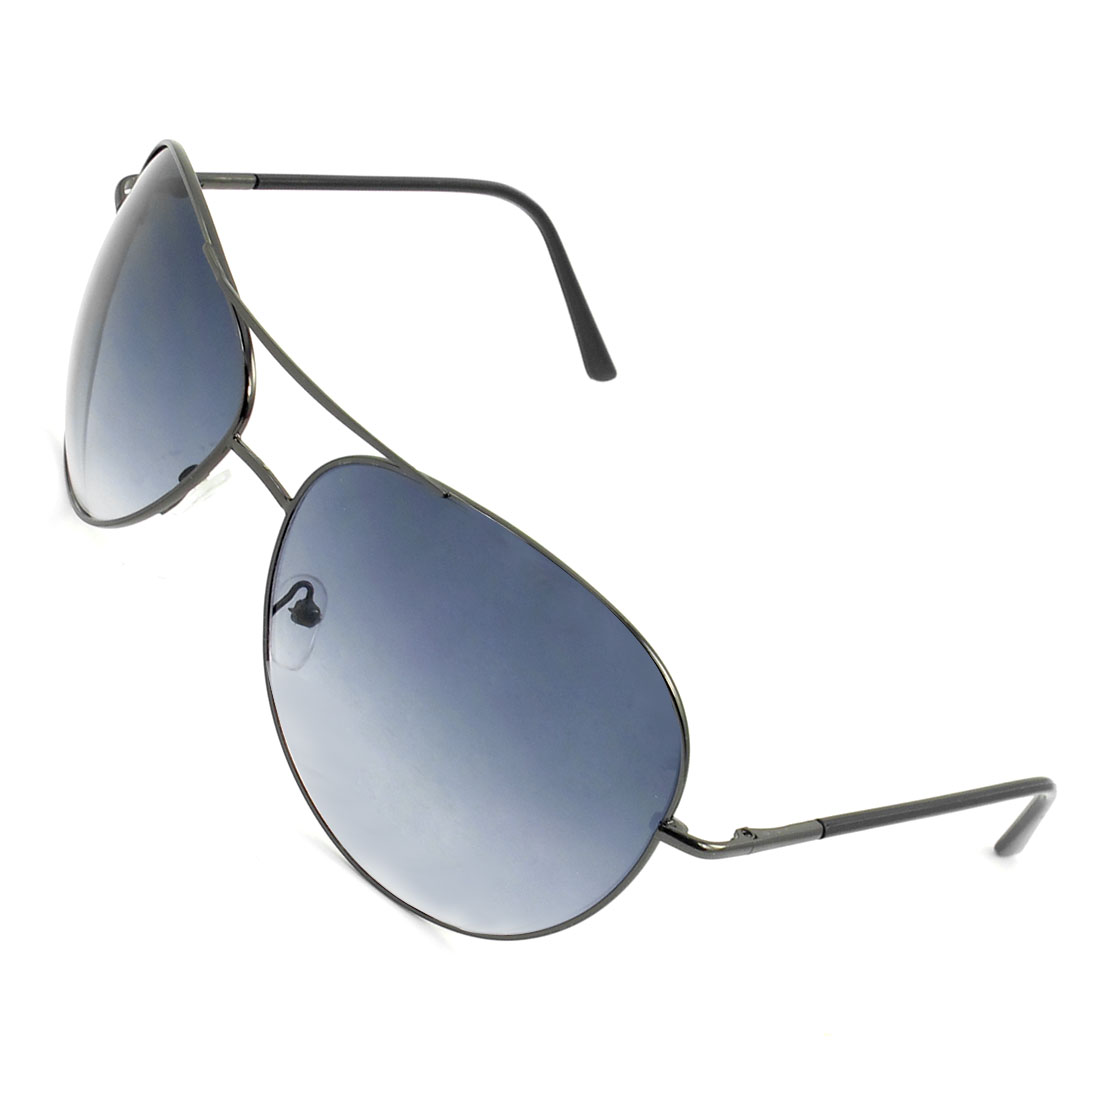 Unisex Black Metal Full Rim Gray Teardrop Lens Dual Bridge Sunglasses